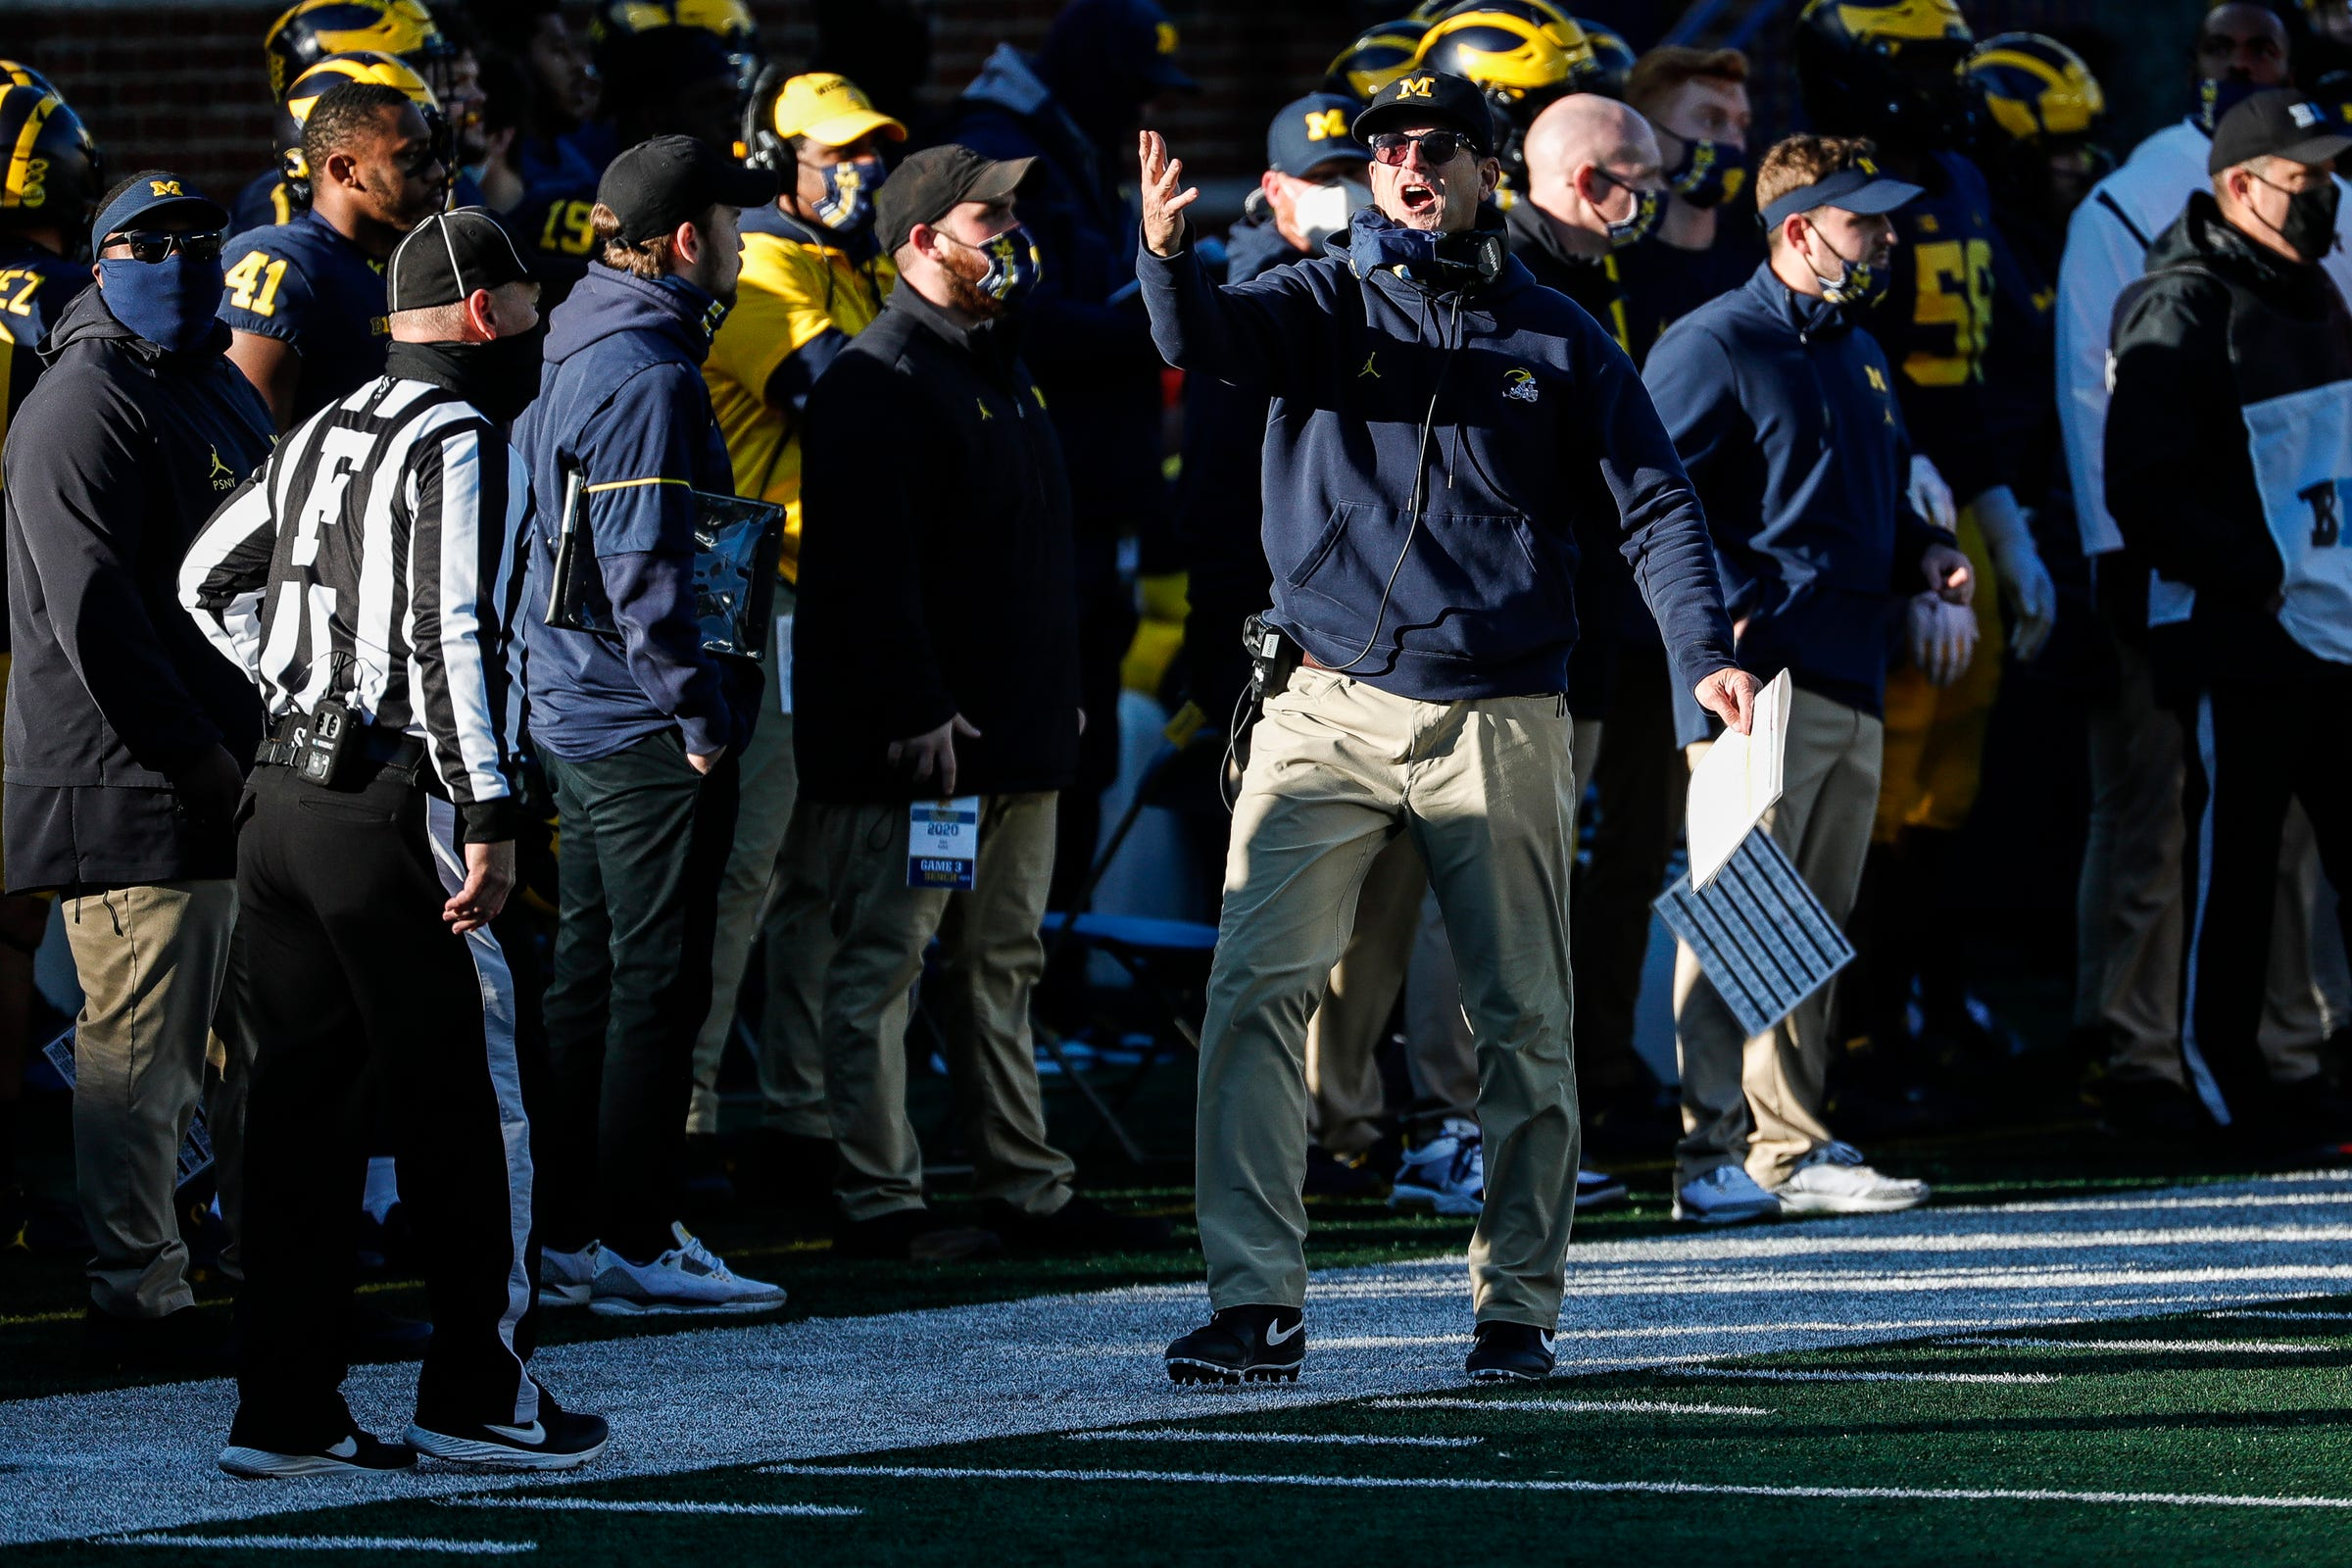 Michigan football halted by virus, but Jim Harbaugh says Wolverines' season has 'been worth it'